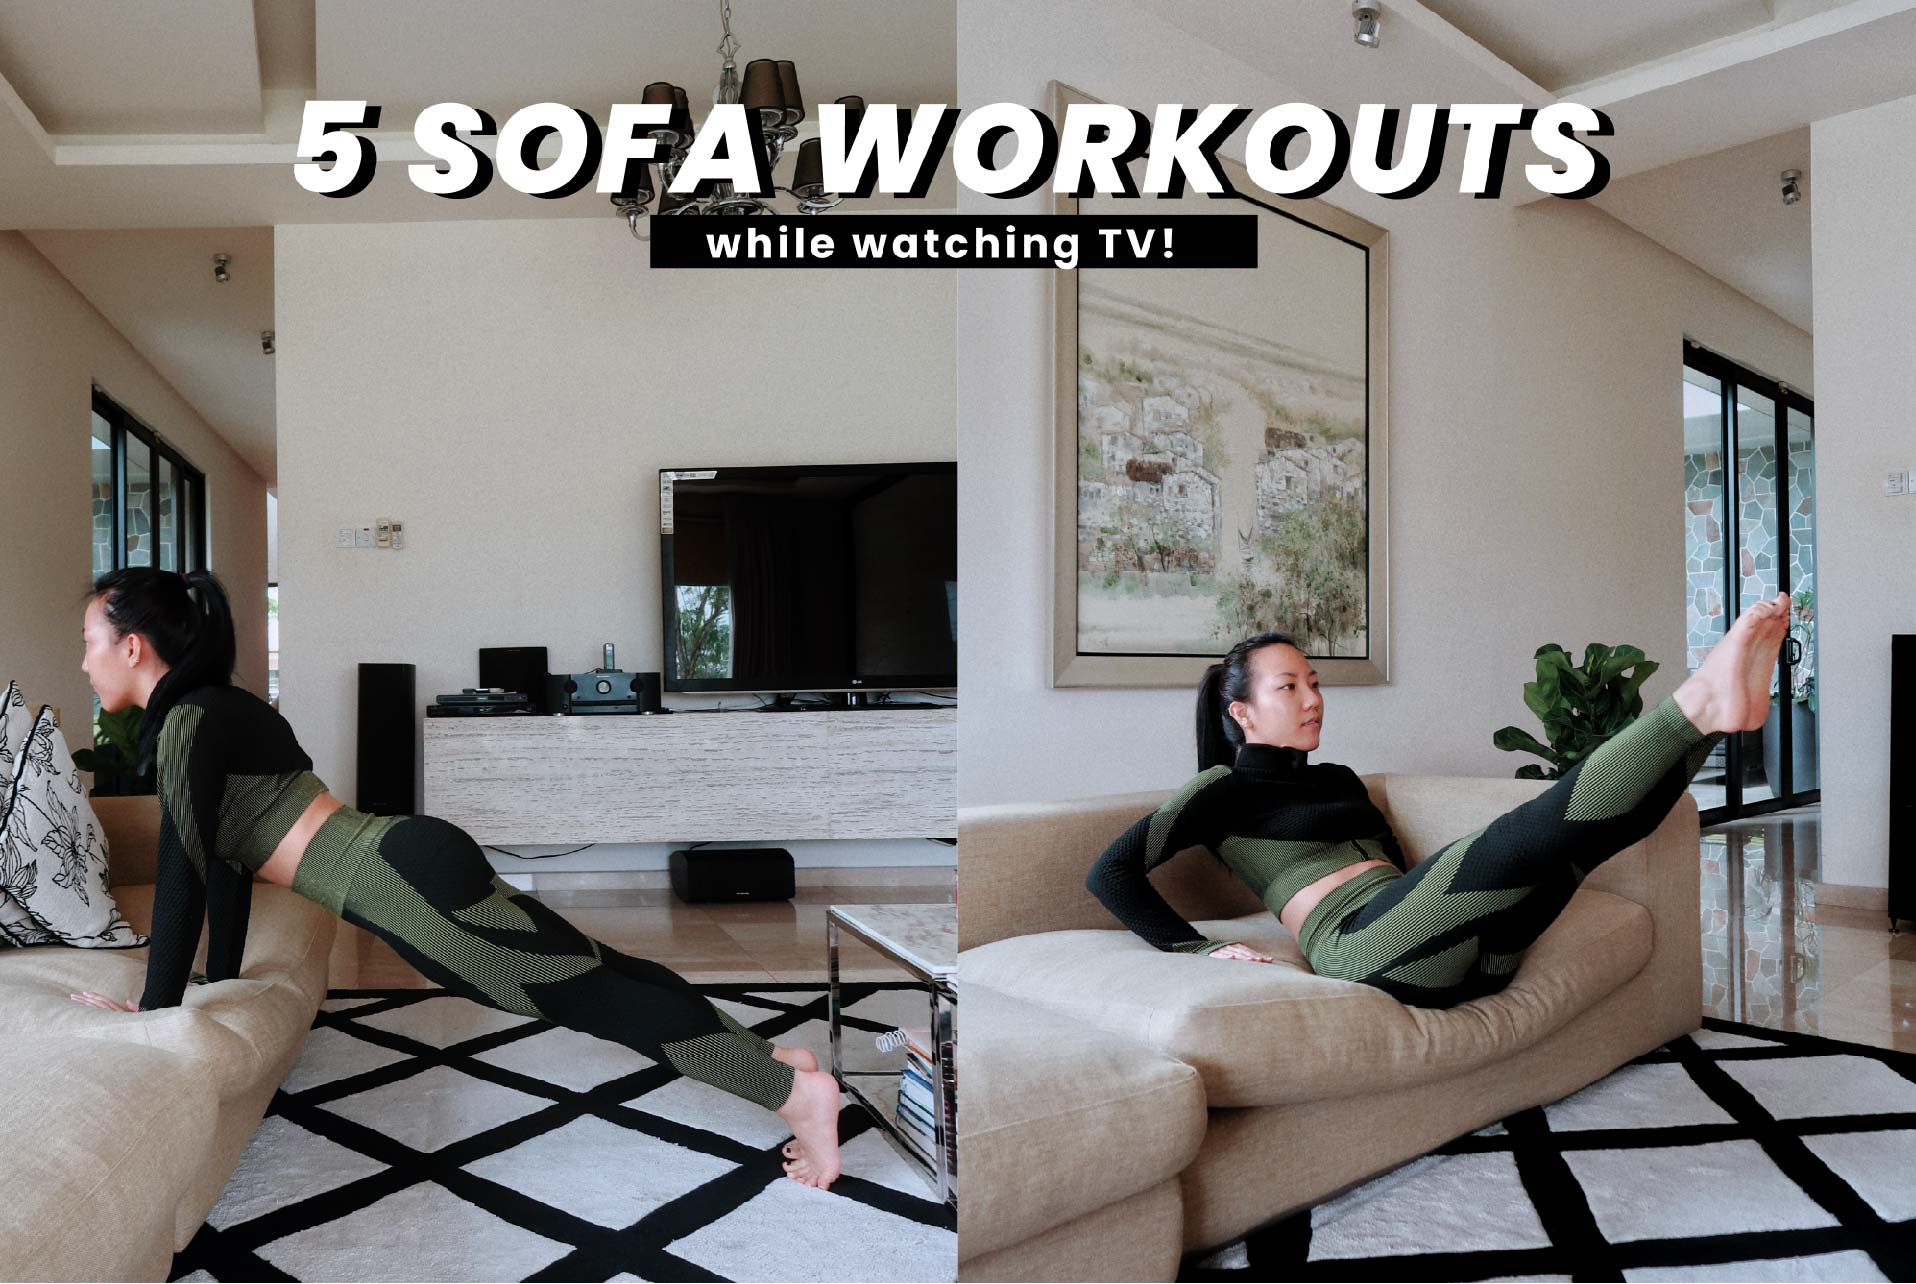 5 SOFA WORKOUTS YOU CAN DO AT HOME